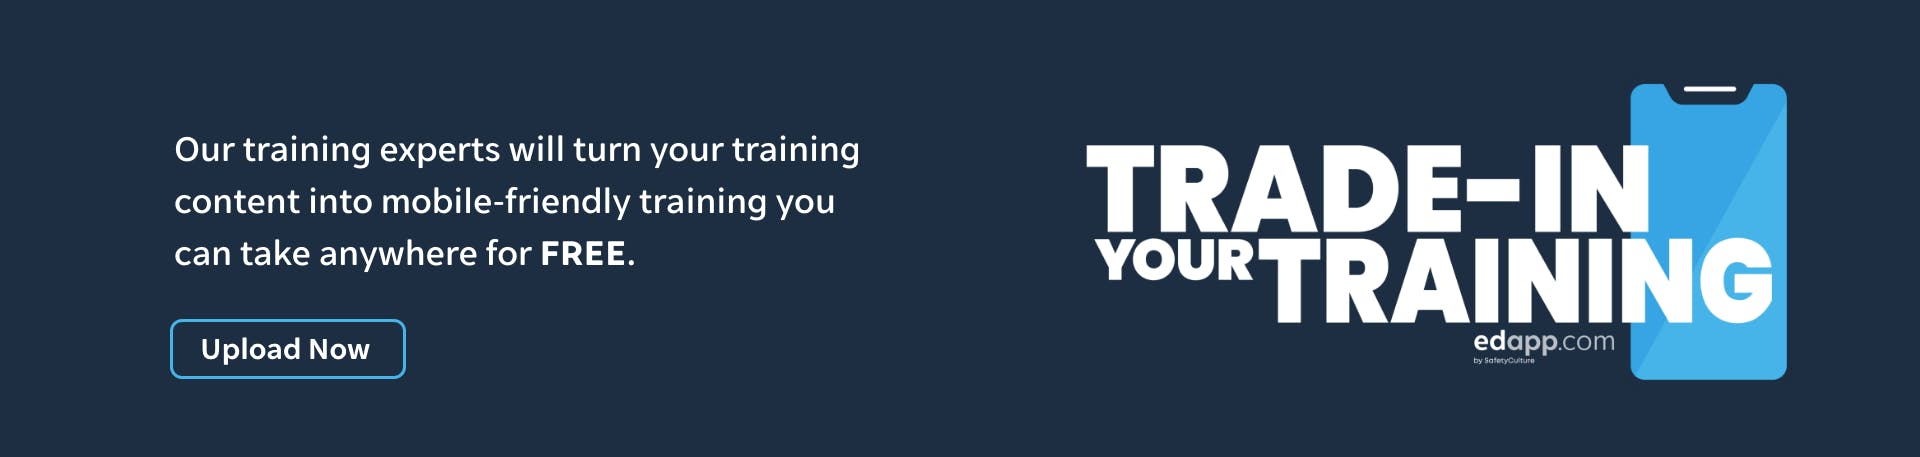 Trade in your training